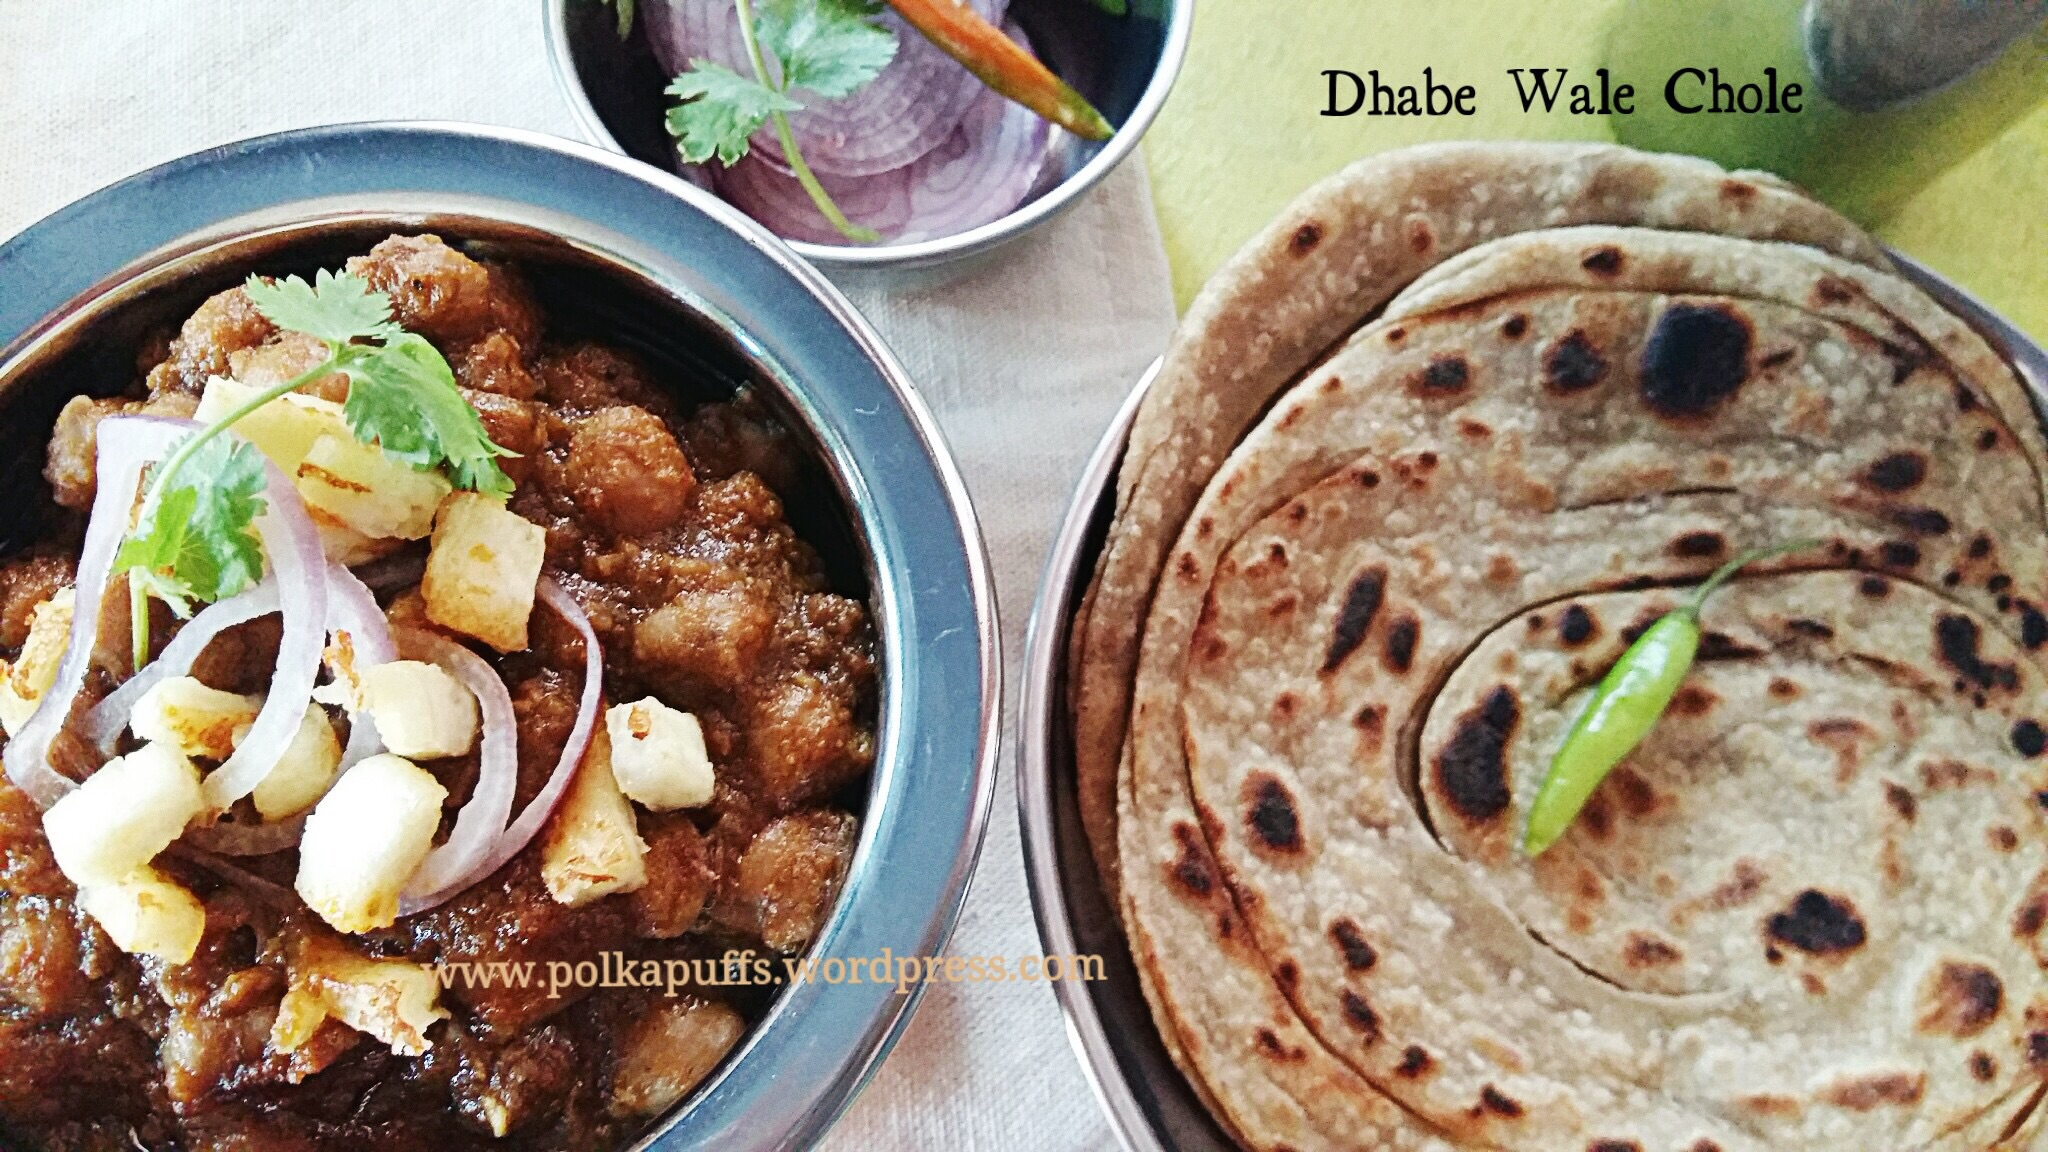 North indian curry archives polka puffs how to make chana masala recipe of chole bhature polkapuffs chole recipe dhaba style chole dhaba forumfinder Image collections